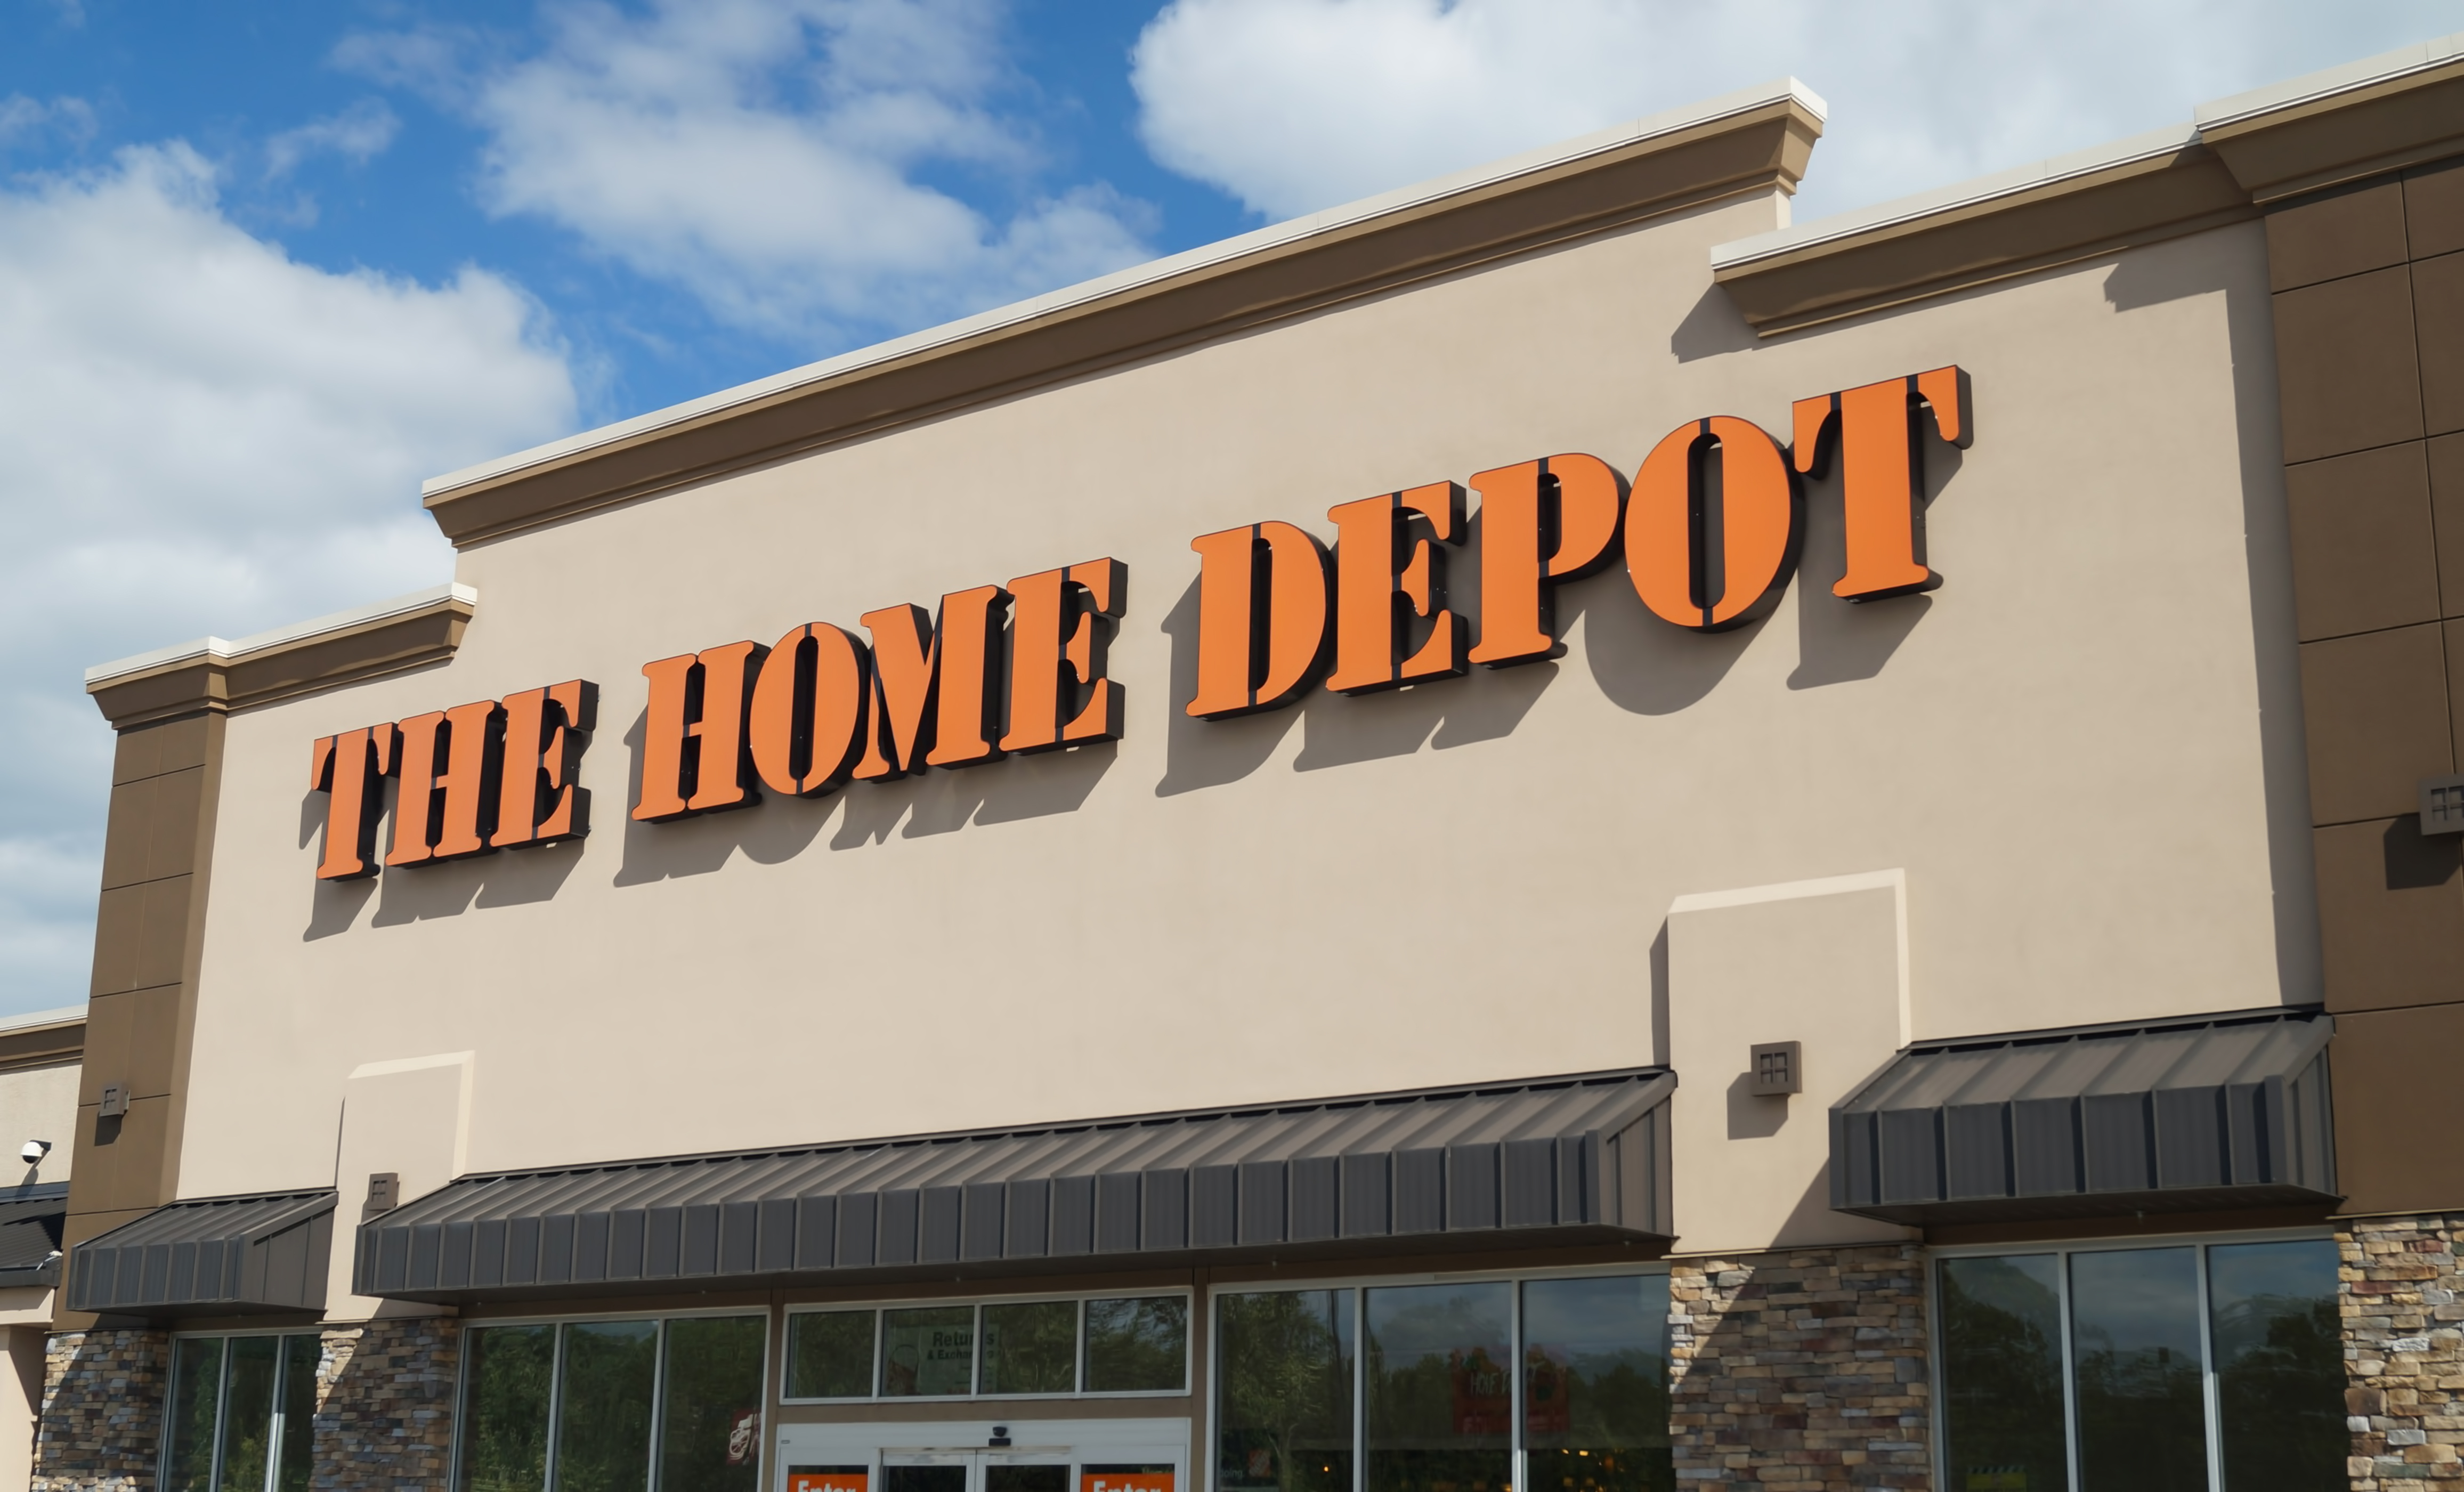 Home Depot Agrees $19.5 Million To Settle 2014 Breach | Threatpost on home depot cash, home depot plumbing aisle, home depot direct deposit, home depot parking, home depot discounts, home depot benefits, home depot mastercard, home depot delivery, home depot shop, home depot services, home depot forms, home depot secure log in, home depot check, home depot projects, home depot locator, home depot address, home depot rebates, home depot product online, home depot home, home depot pricing,